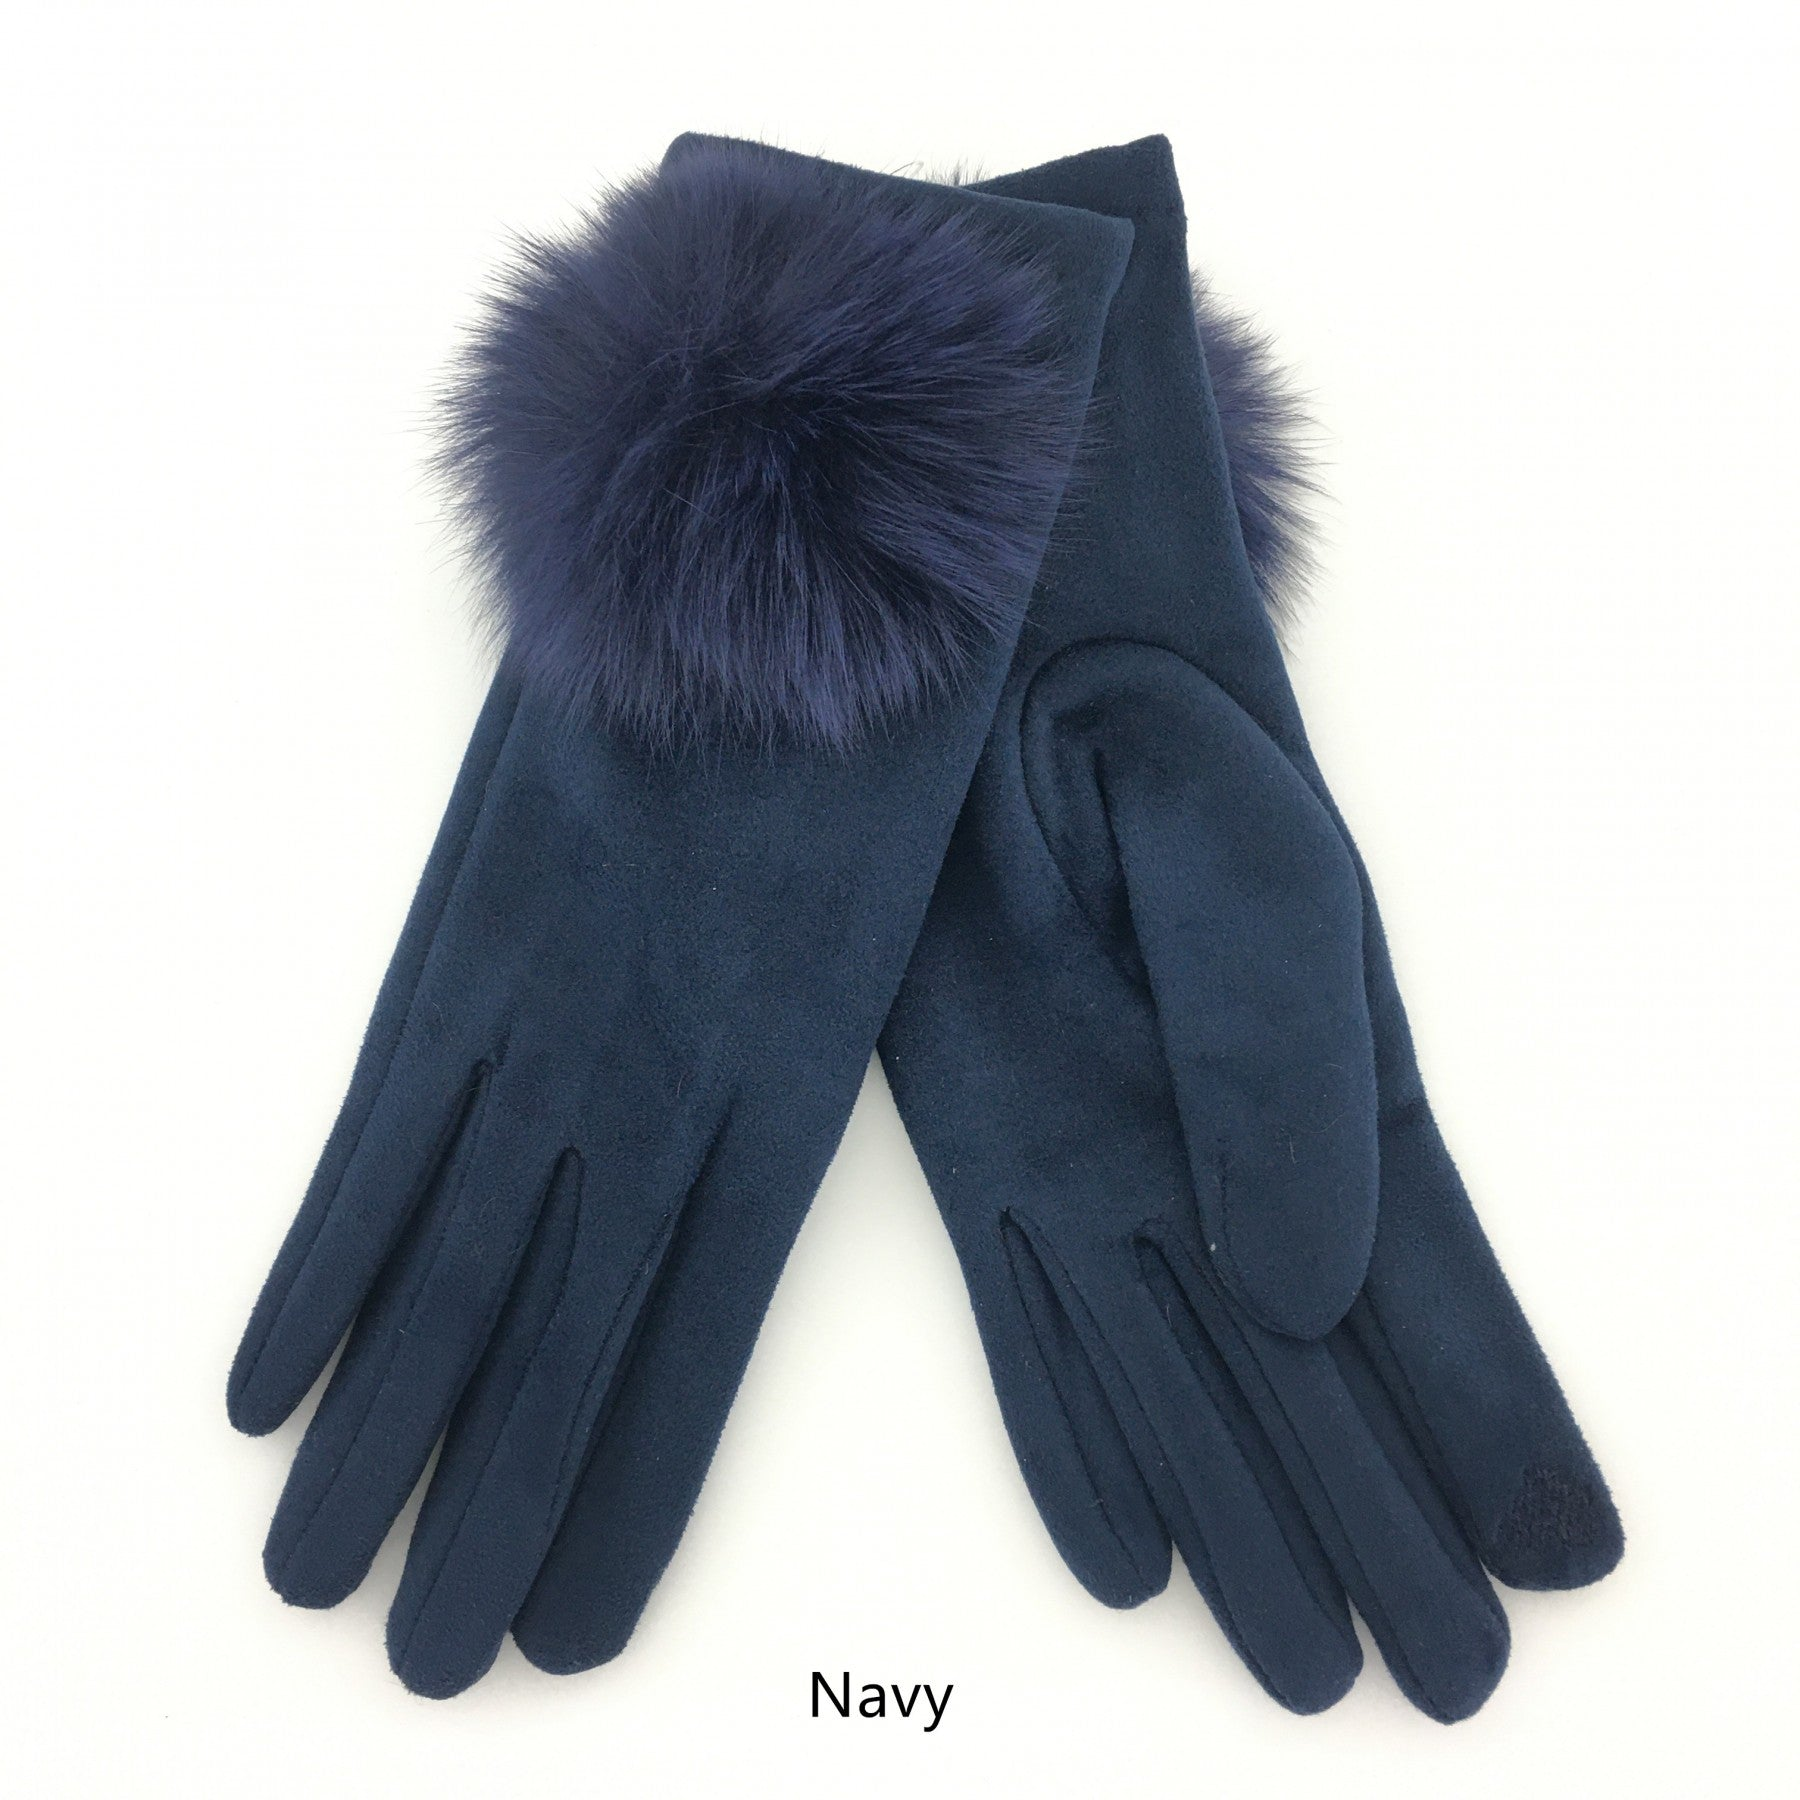 Navy gloves with faux fur detail.